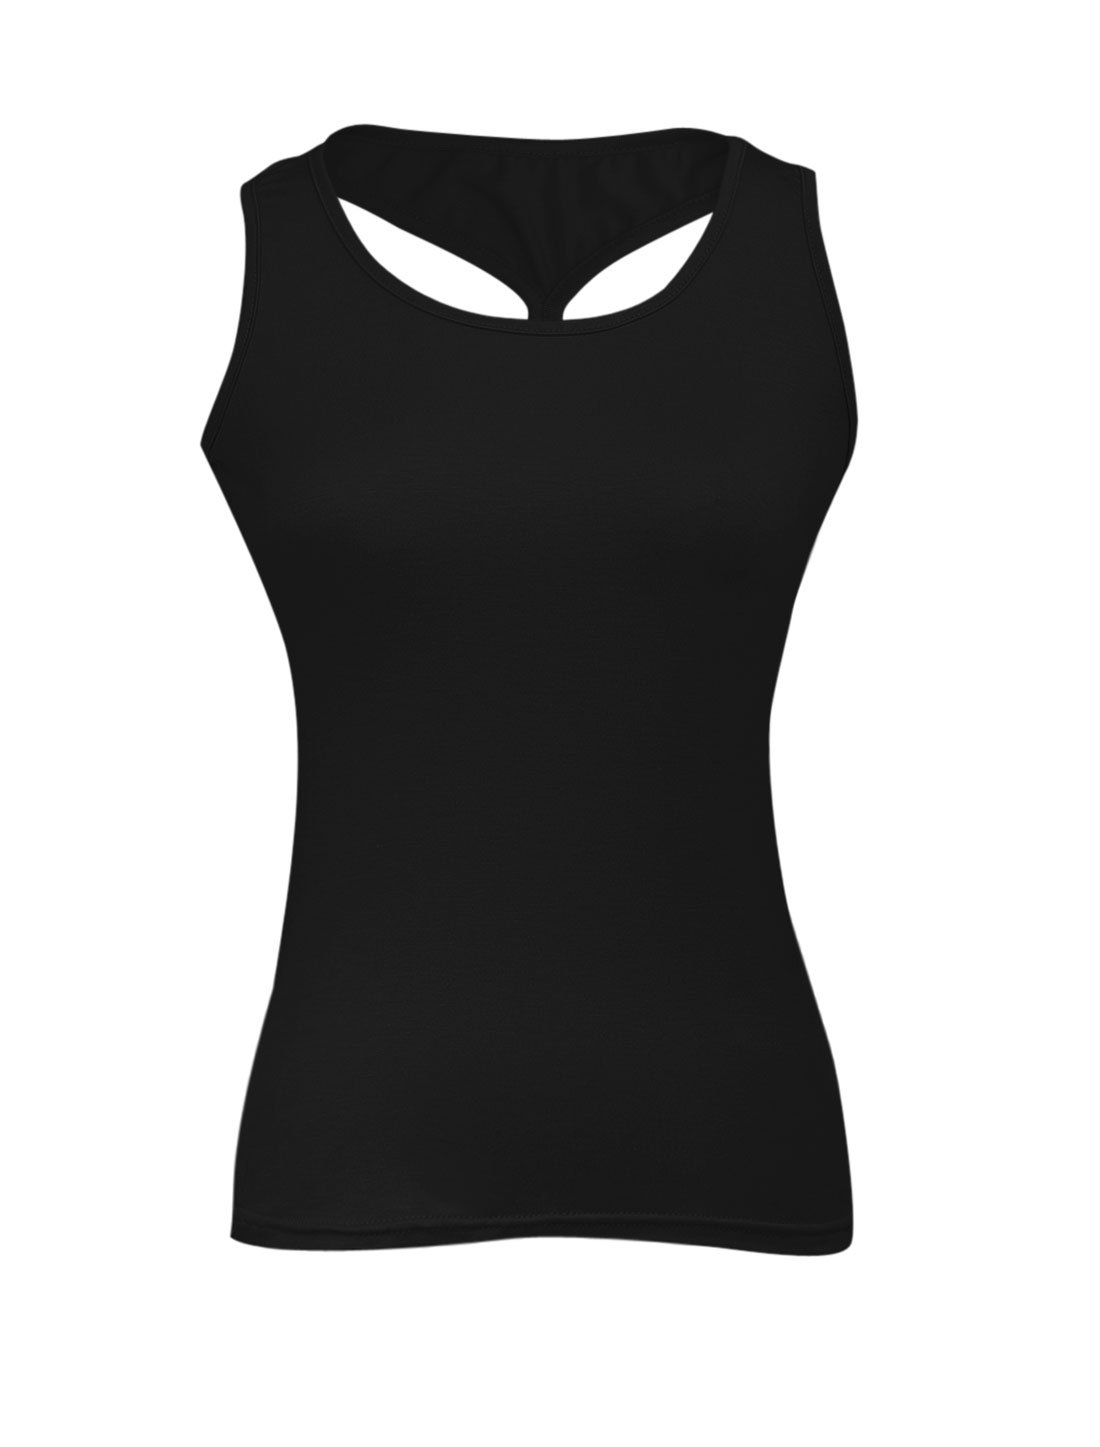 Ladies U Neck Cross Back Elastic Slim Fit Tank Top Black XS